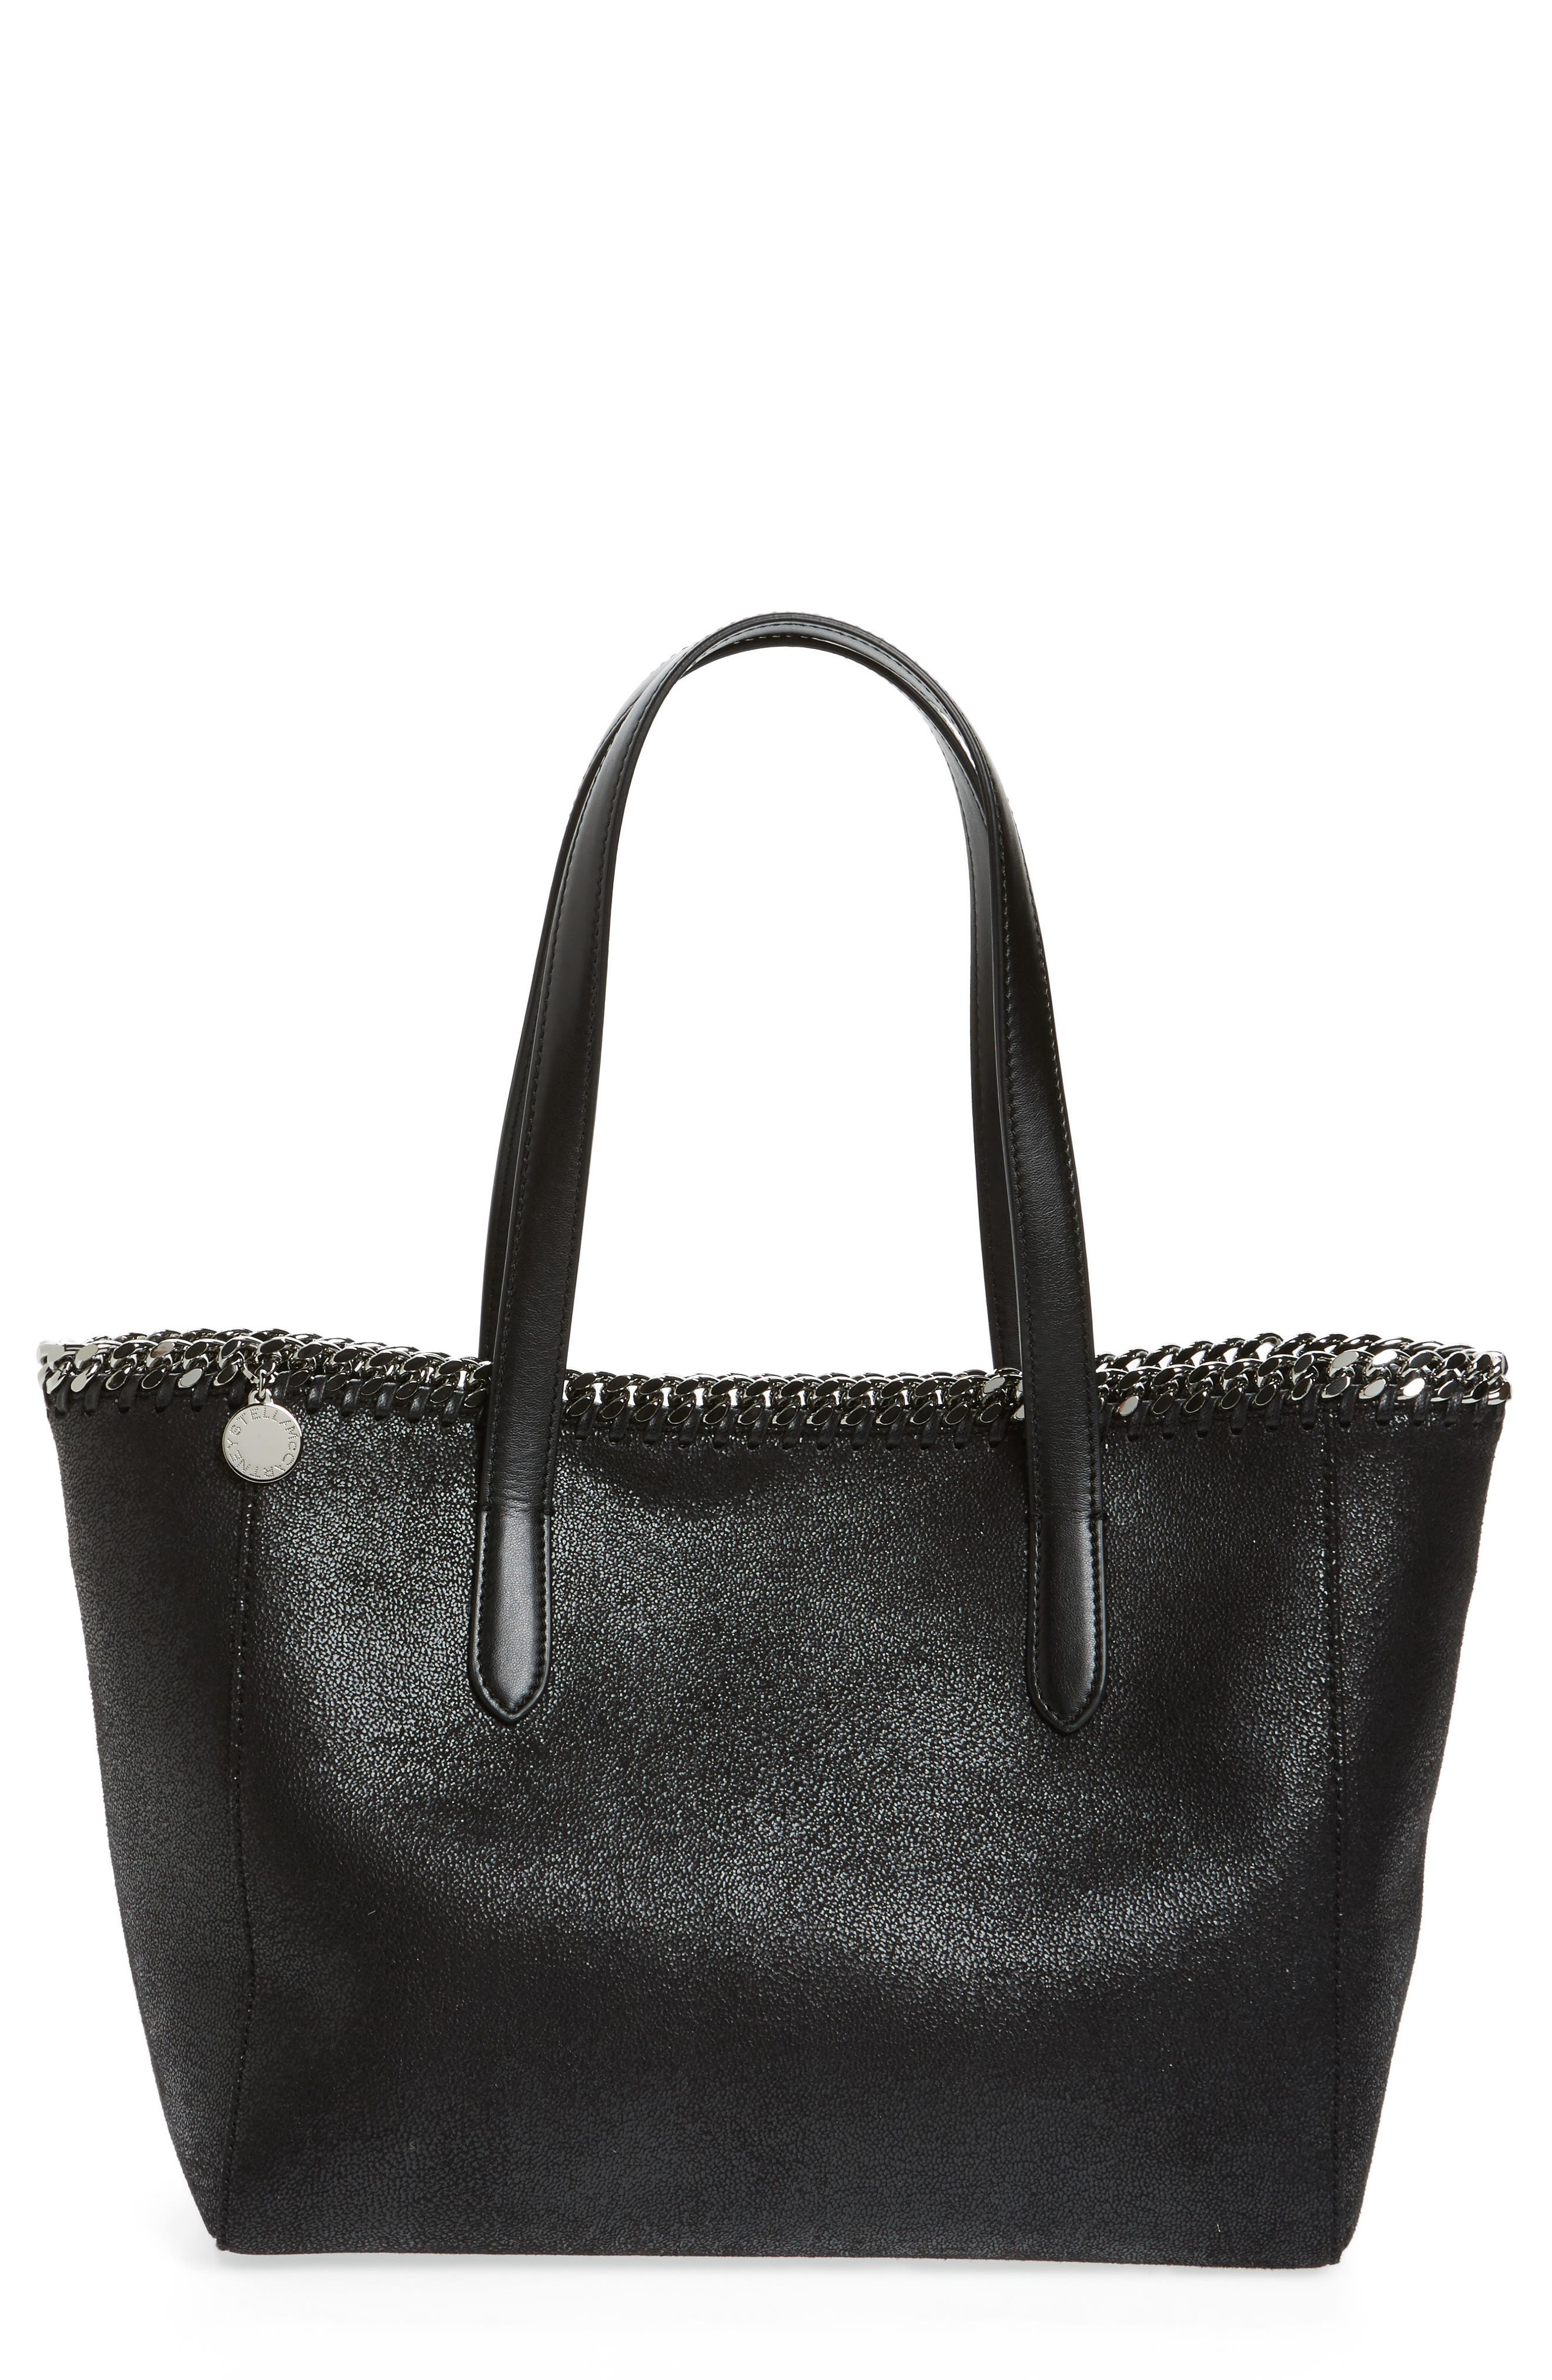 Main Image - Stella McCartney Small Falabella Shaggy Deer Faux Leather Tote